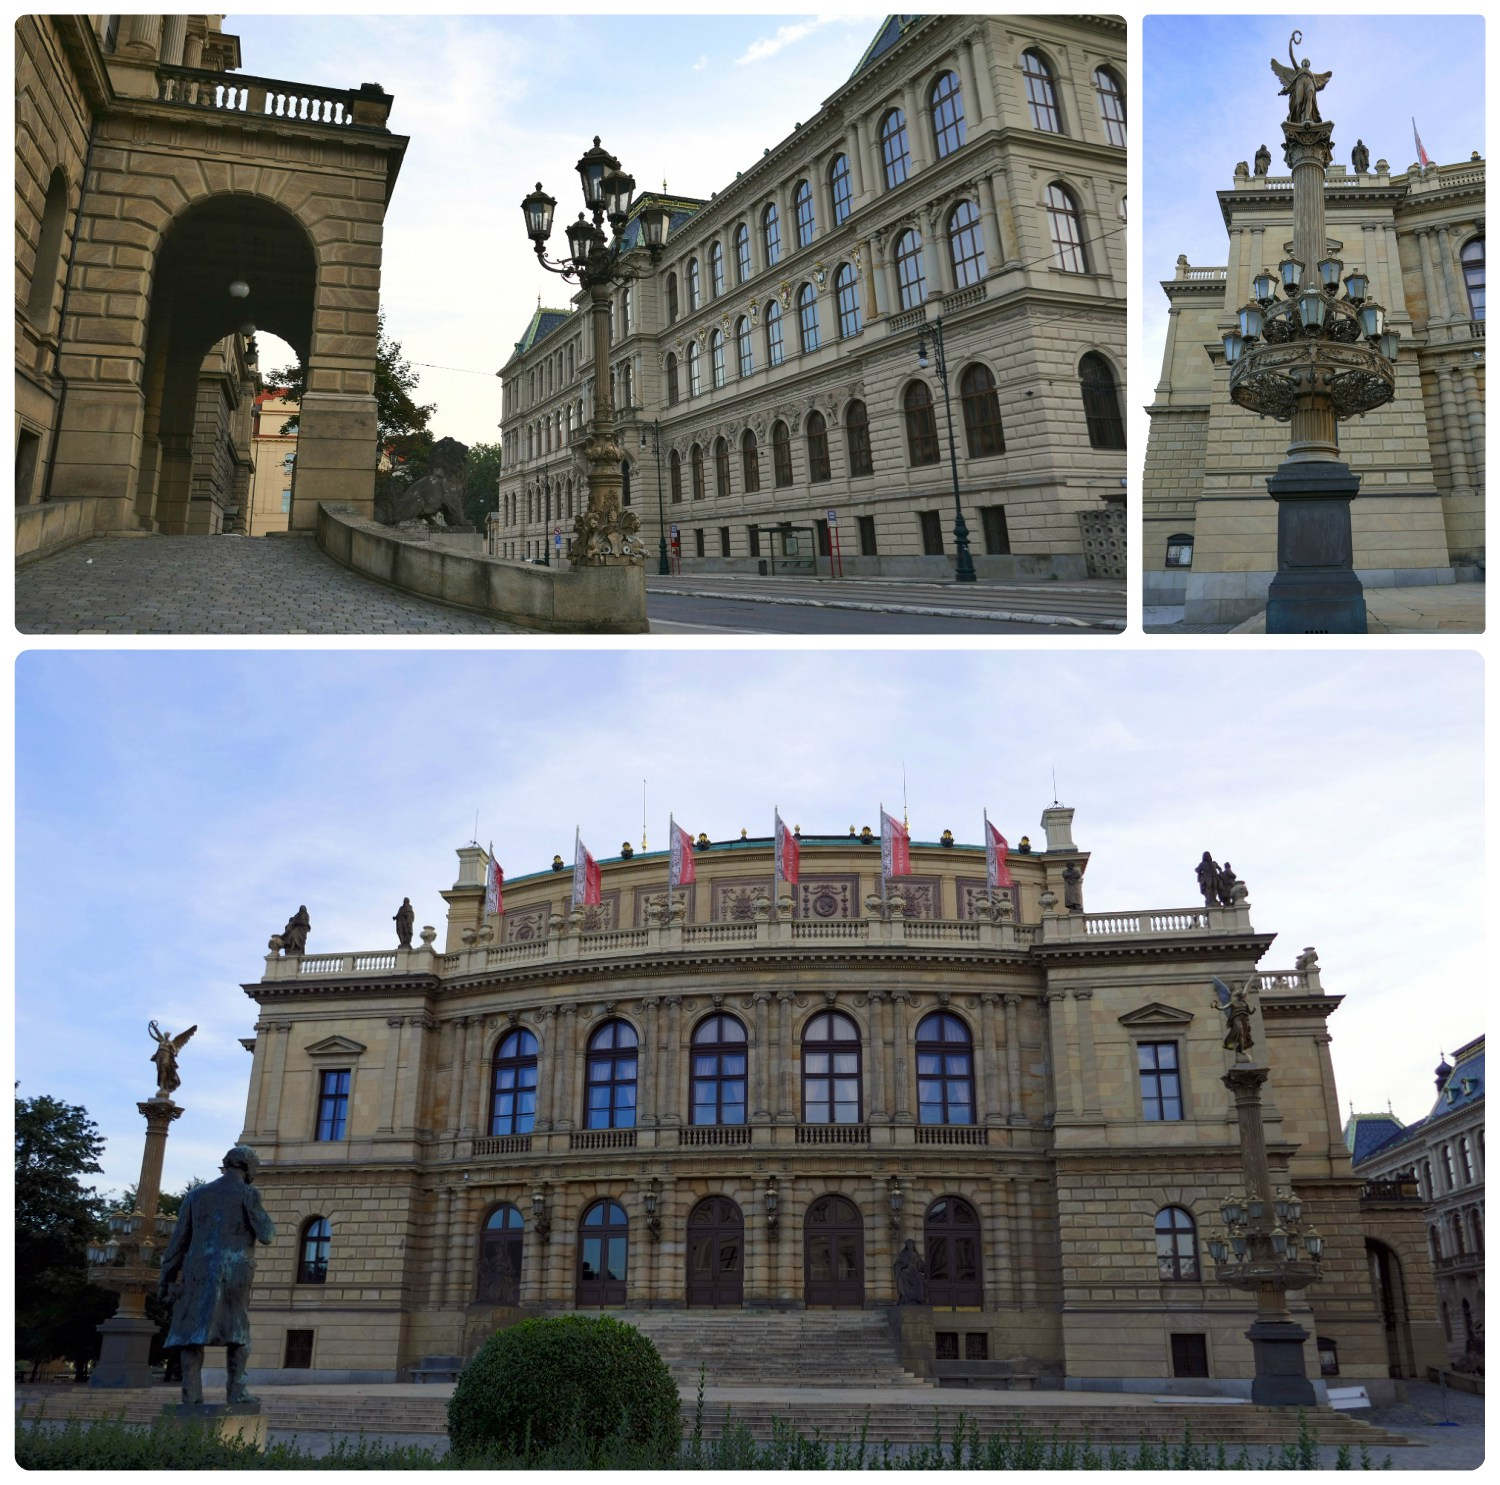 Rudolfinum Hall is beautiful from the exterior, but if you have the chance to see inside, it's spectacular!